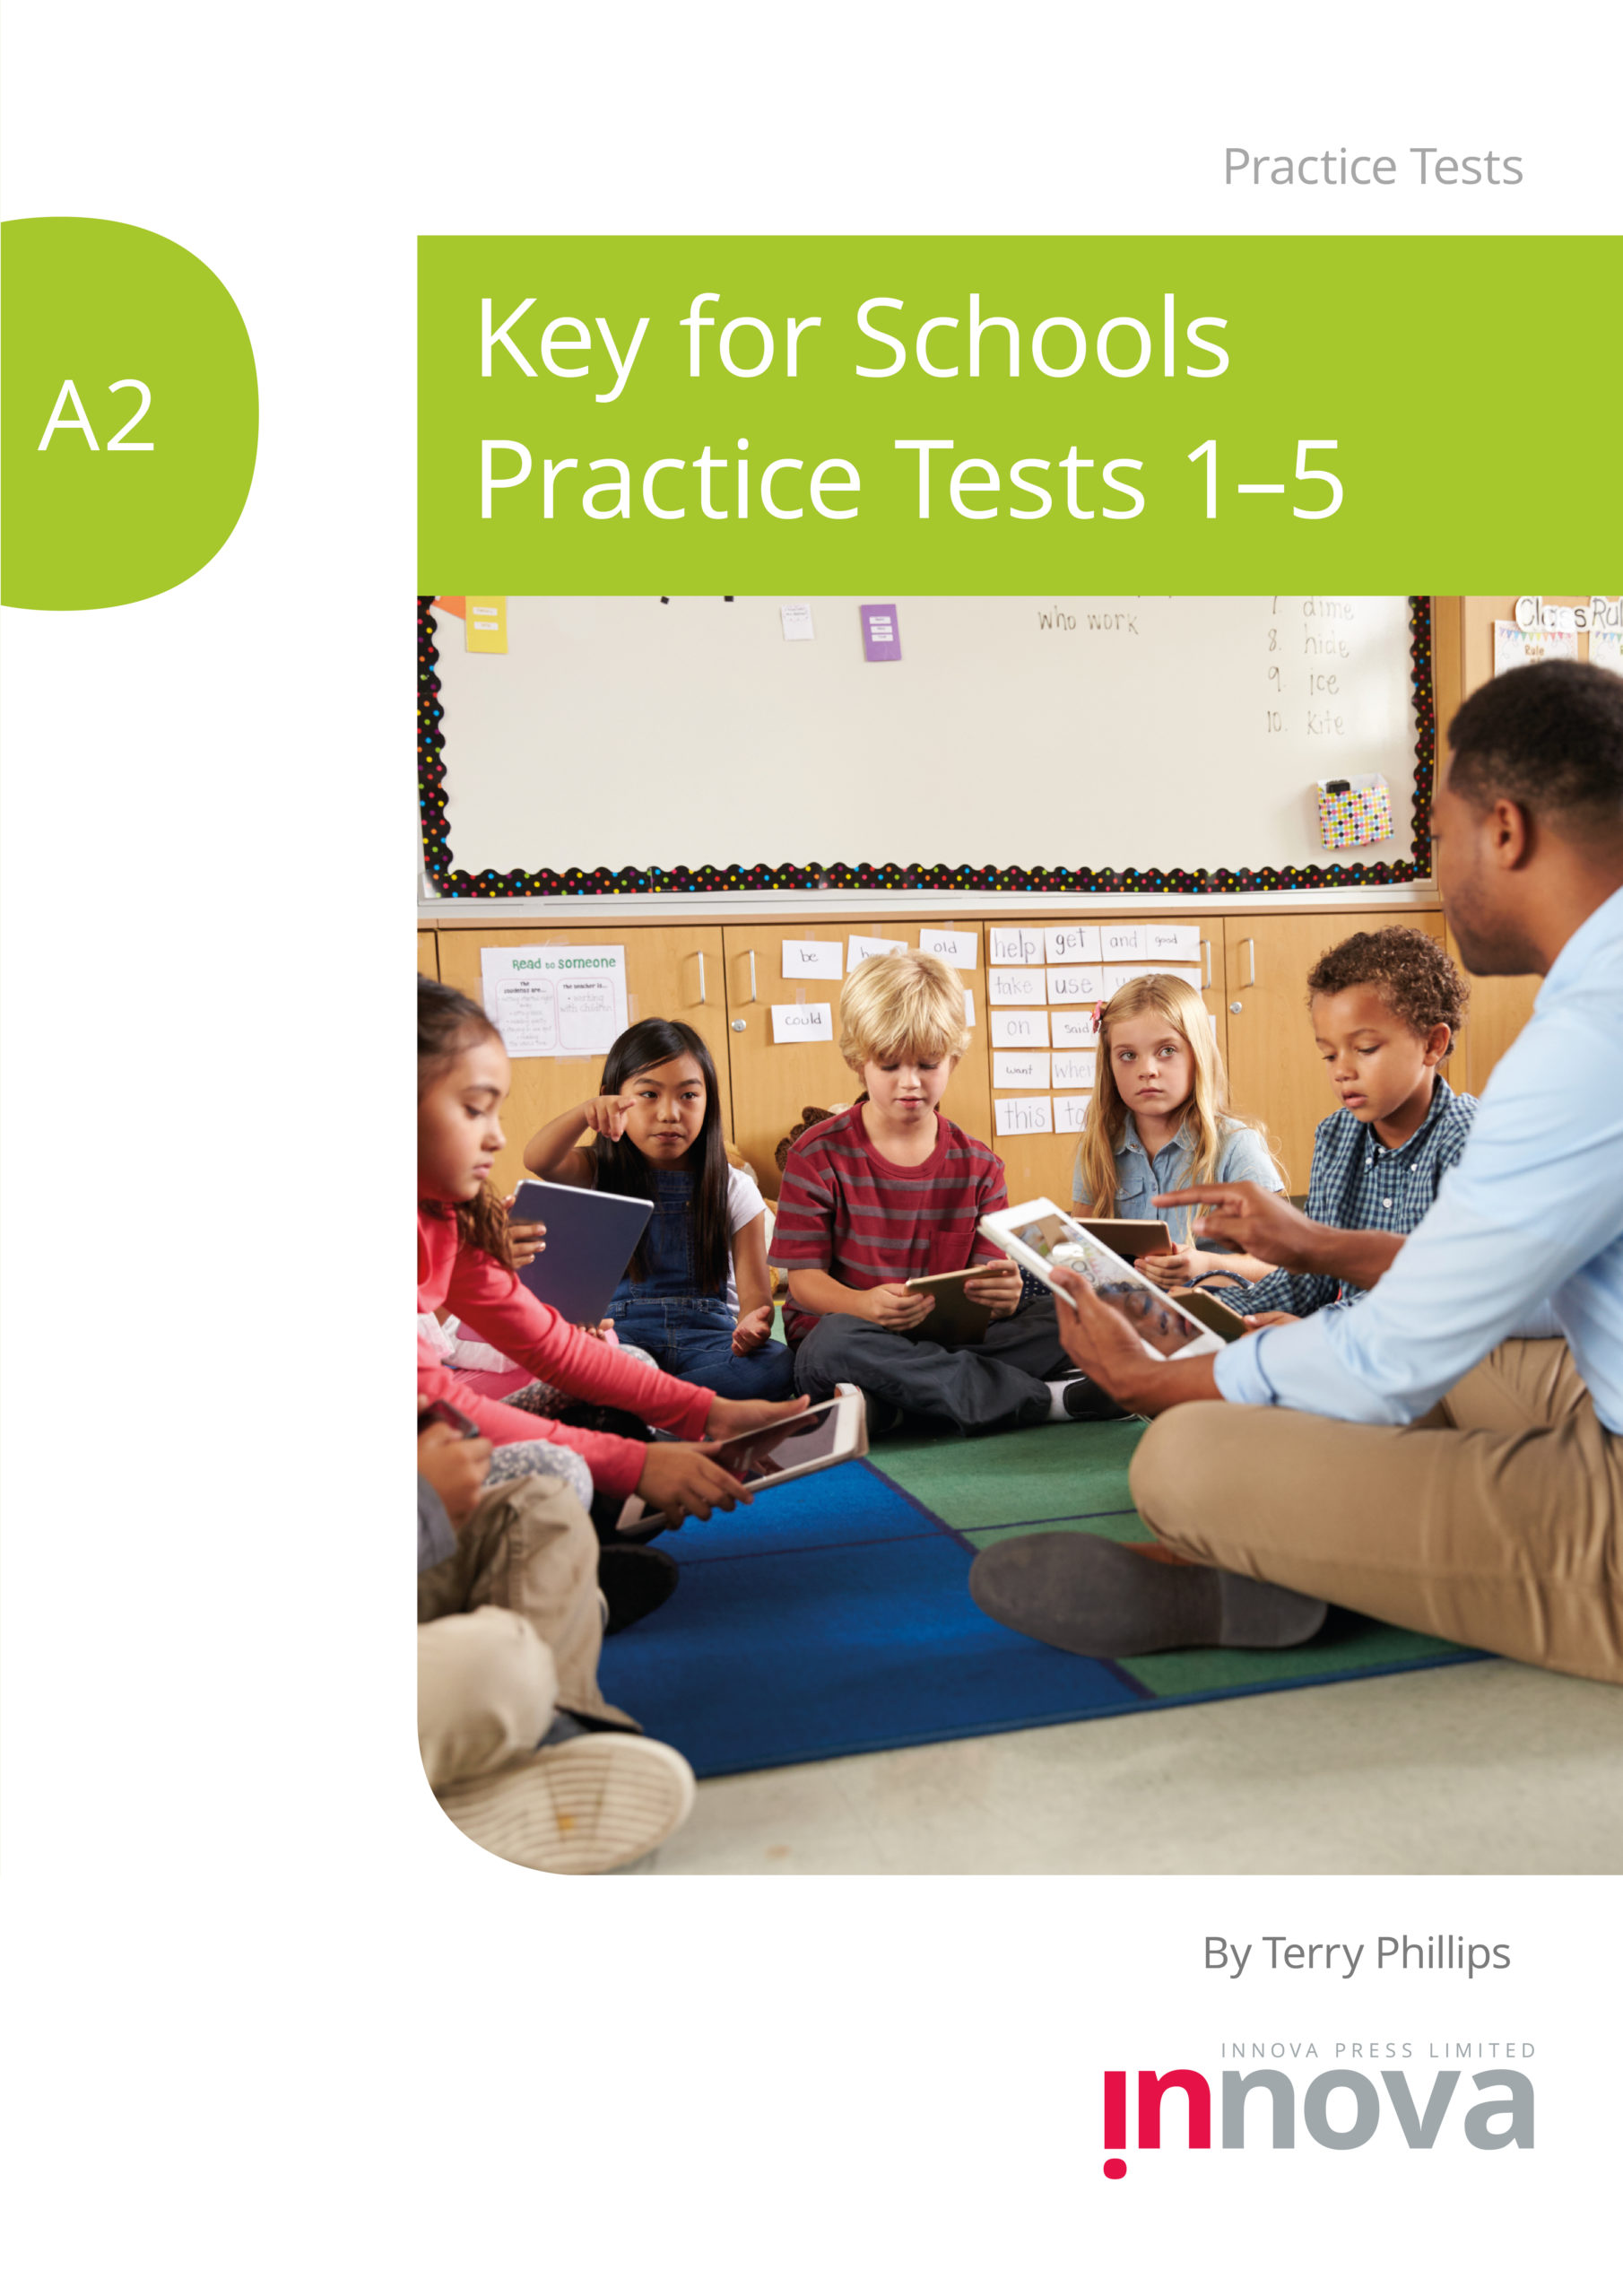 cover for A2 Key for Schools practice tests 1-5, lime green heading, cover image of a small class of children sitting cross legged in front of a whiteboard facing a teacher who is also cross legged on the floor. All of them are holding ipad devices.